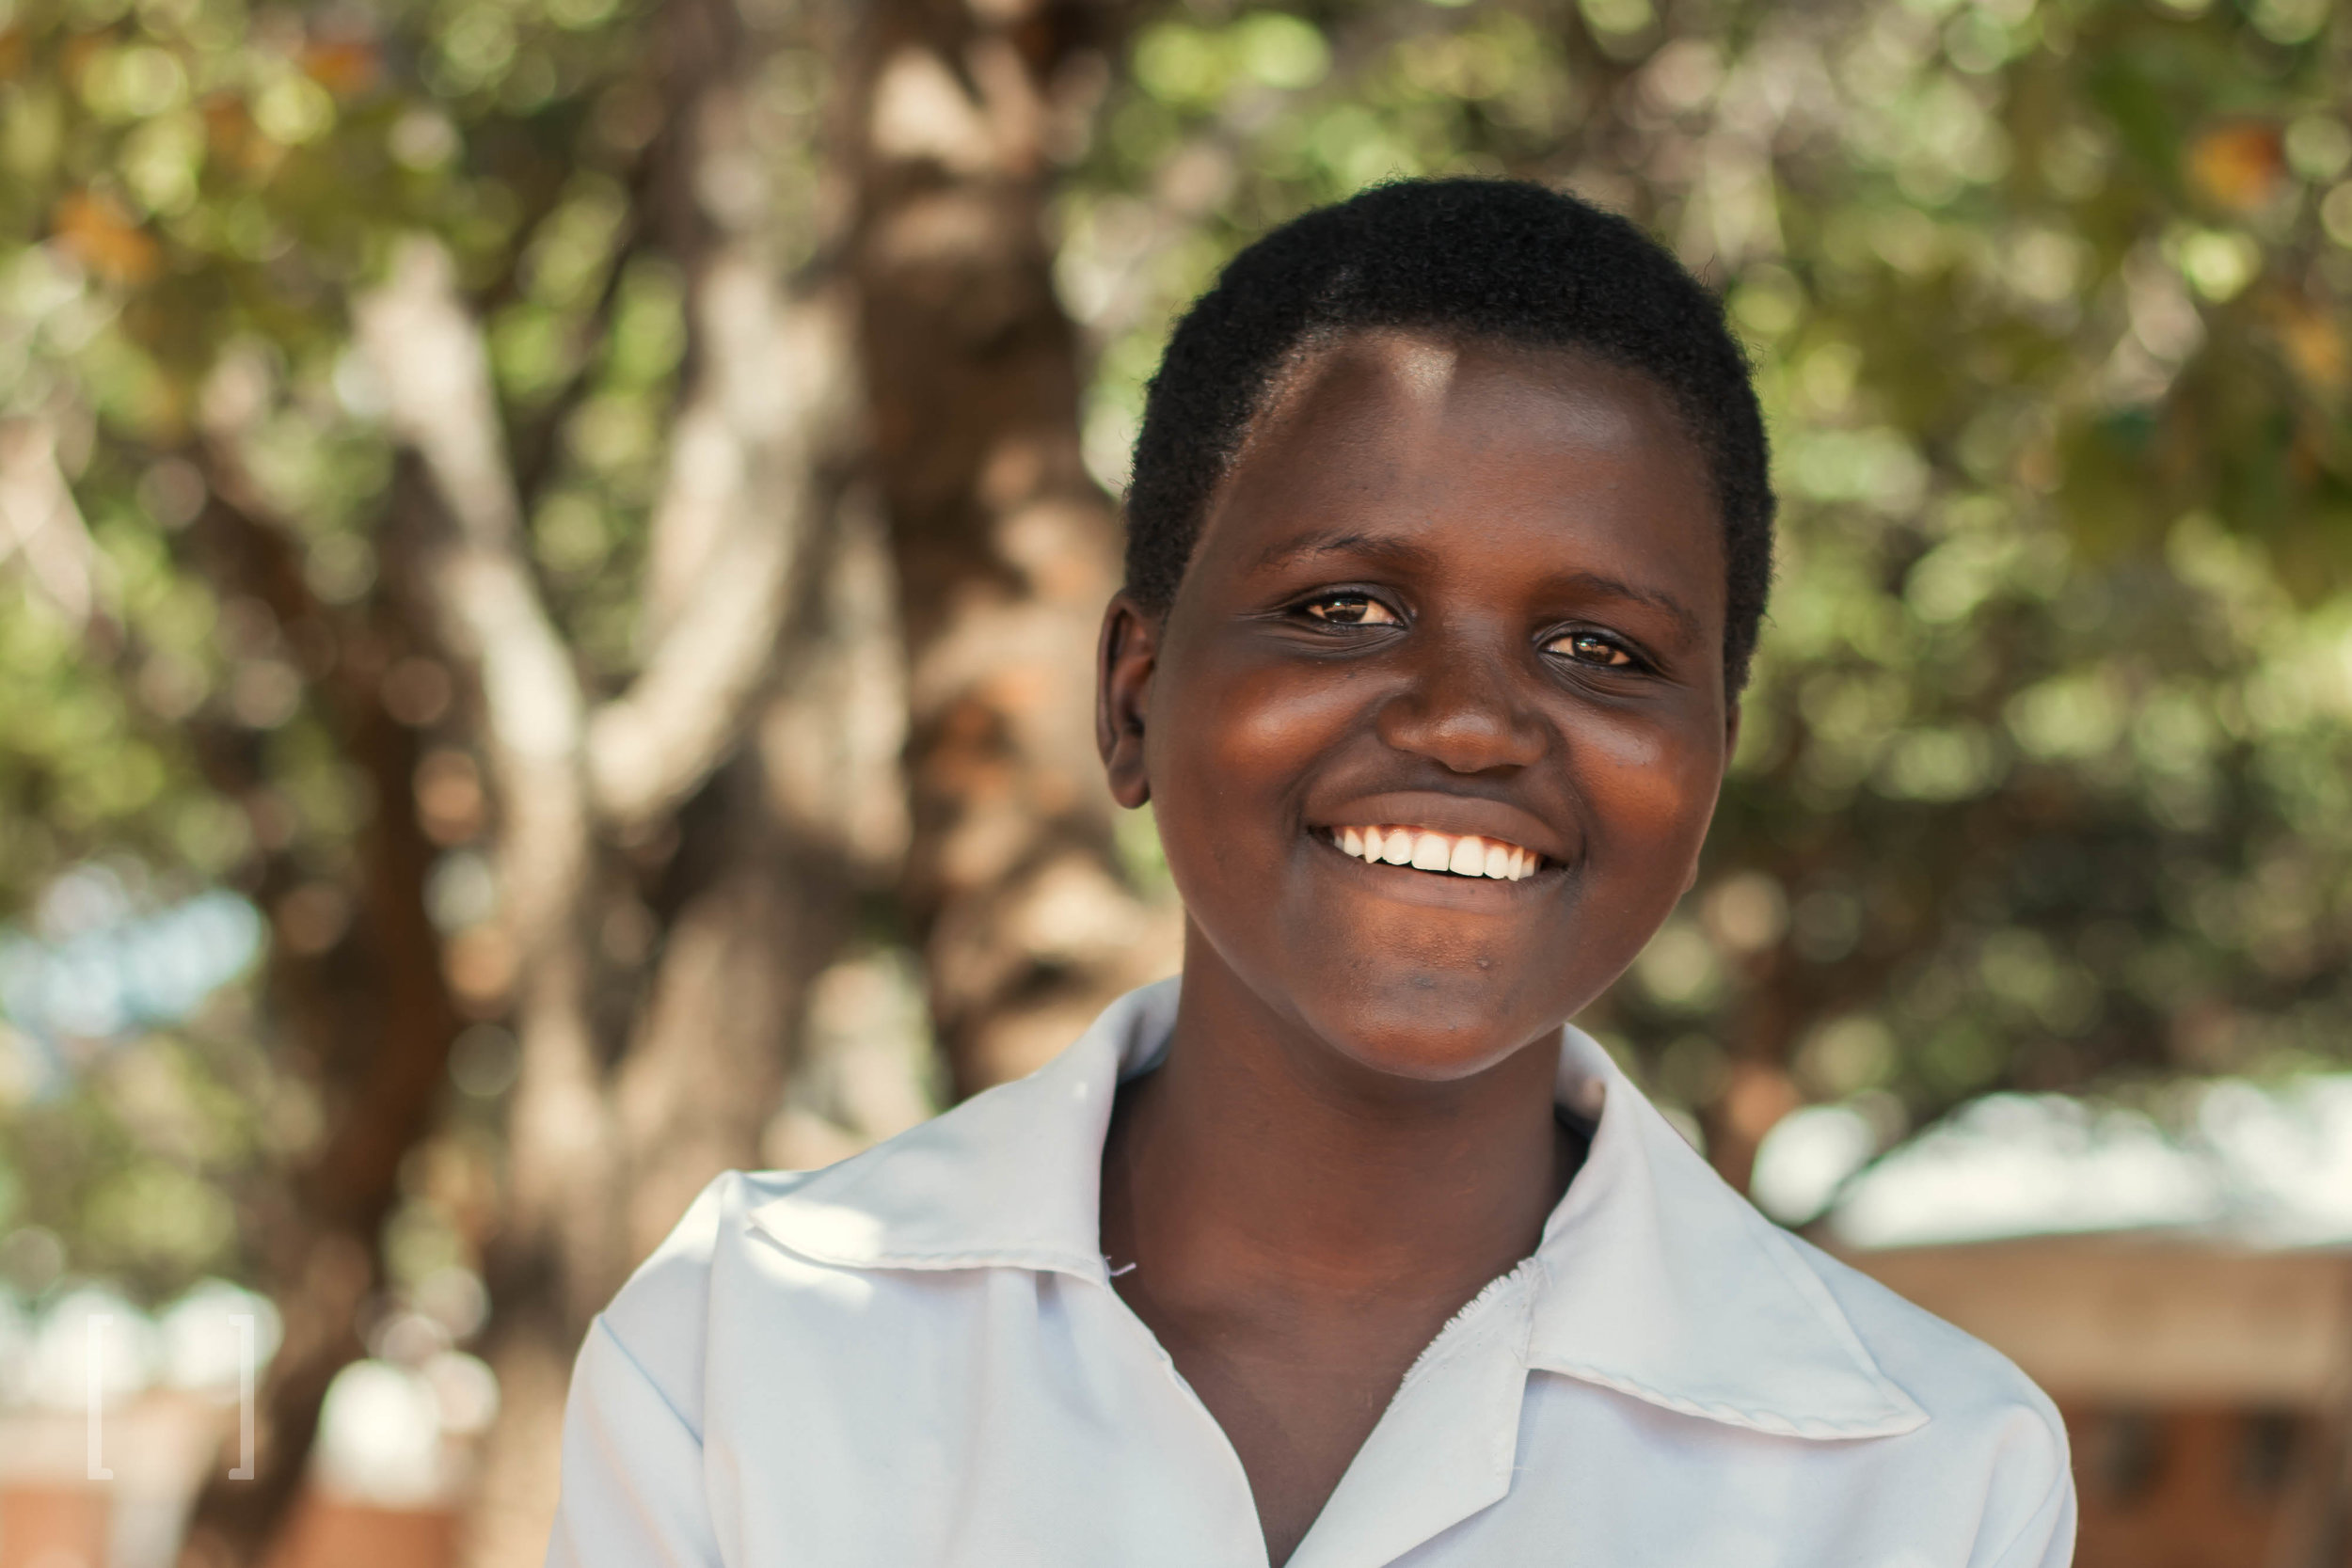 Maggie - Maggie was born on 4 August 2004. She came to Home of Hope to continue her studies. During holidays, she visits her chronically ill mother who is unable to care for her. Maggie would like to study nursing in order to treat her mother's condition. Be a part of Maggie's global family!